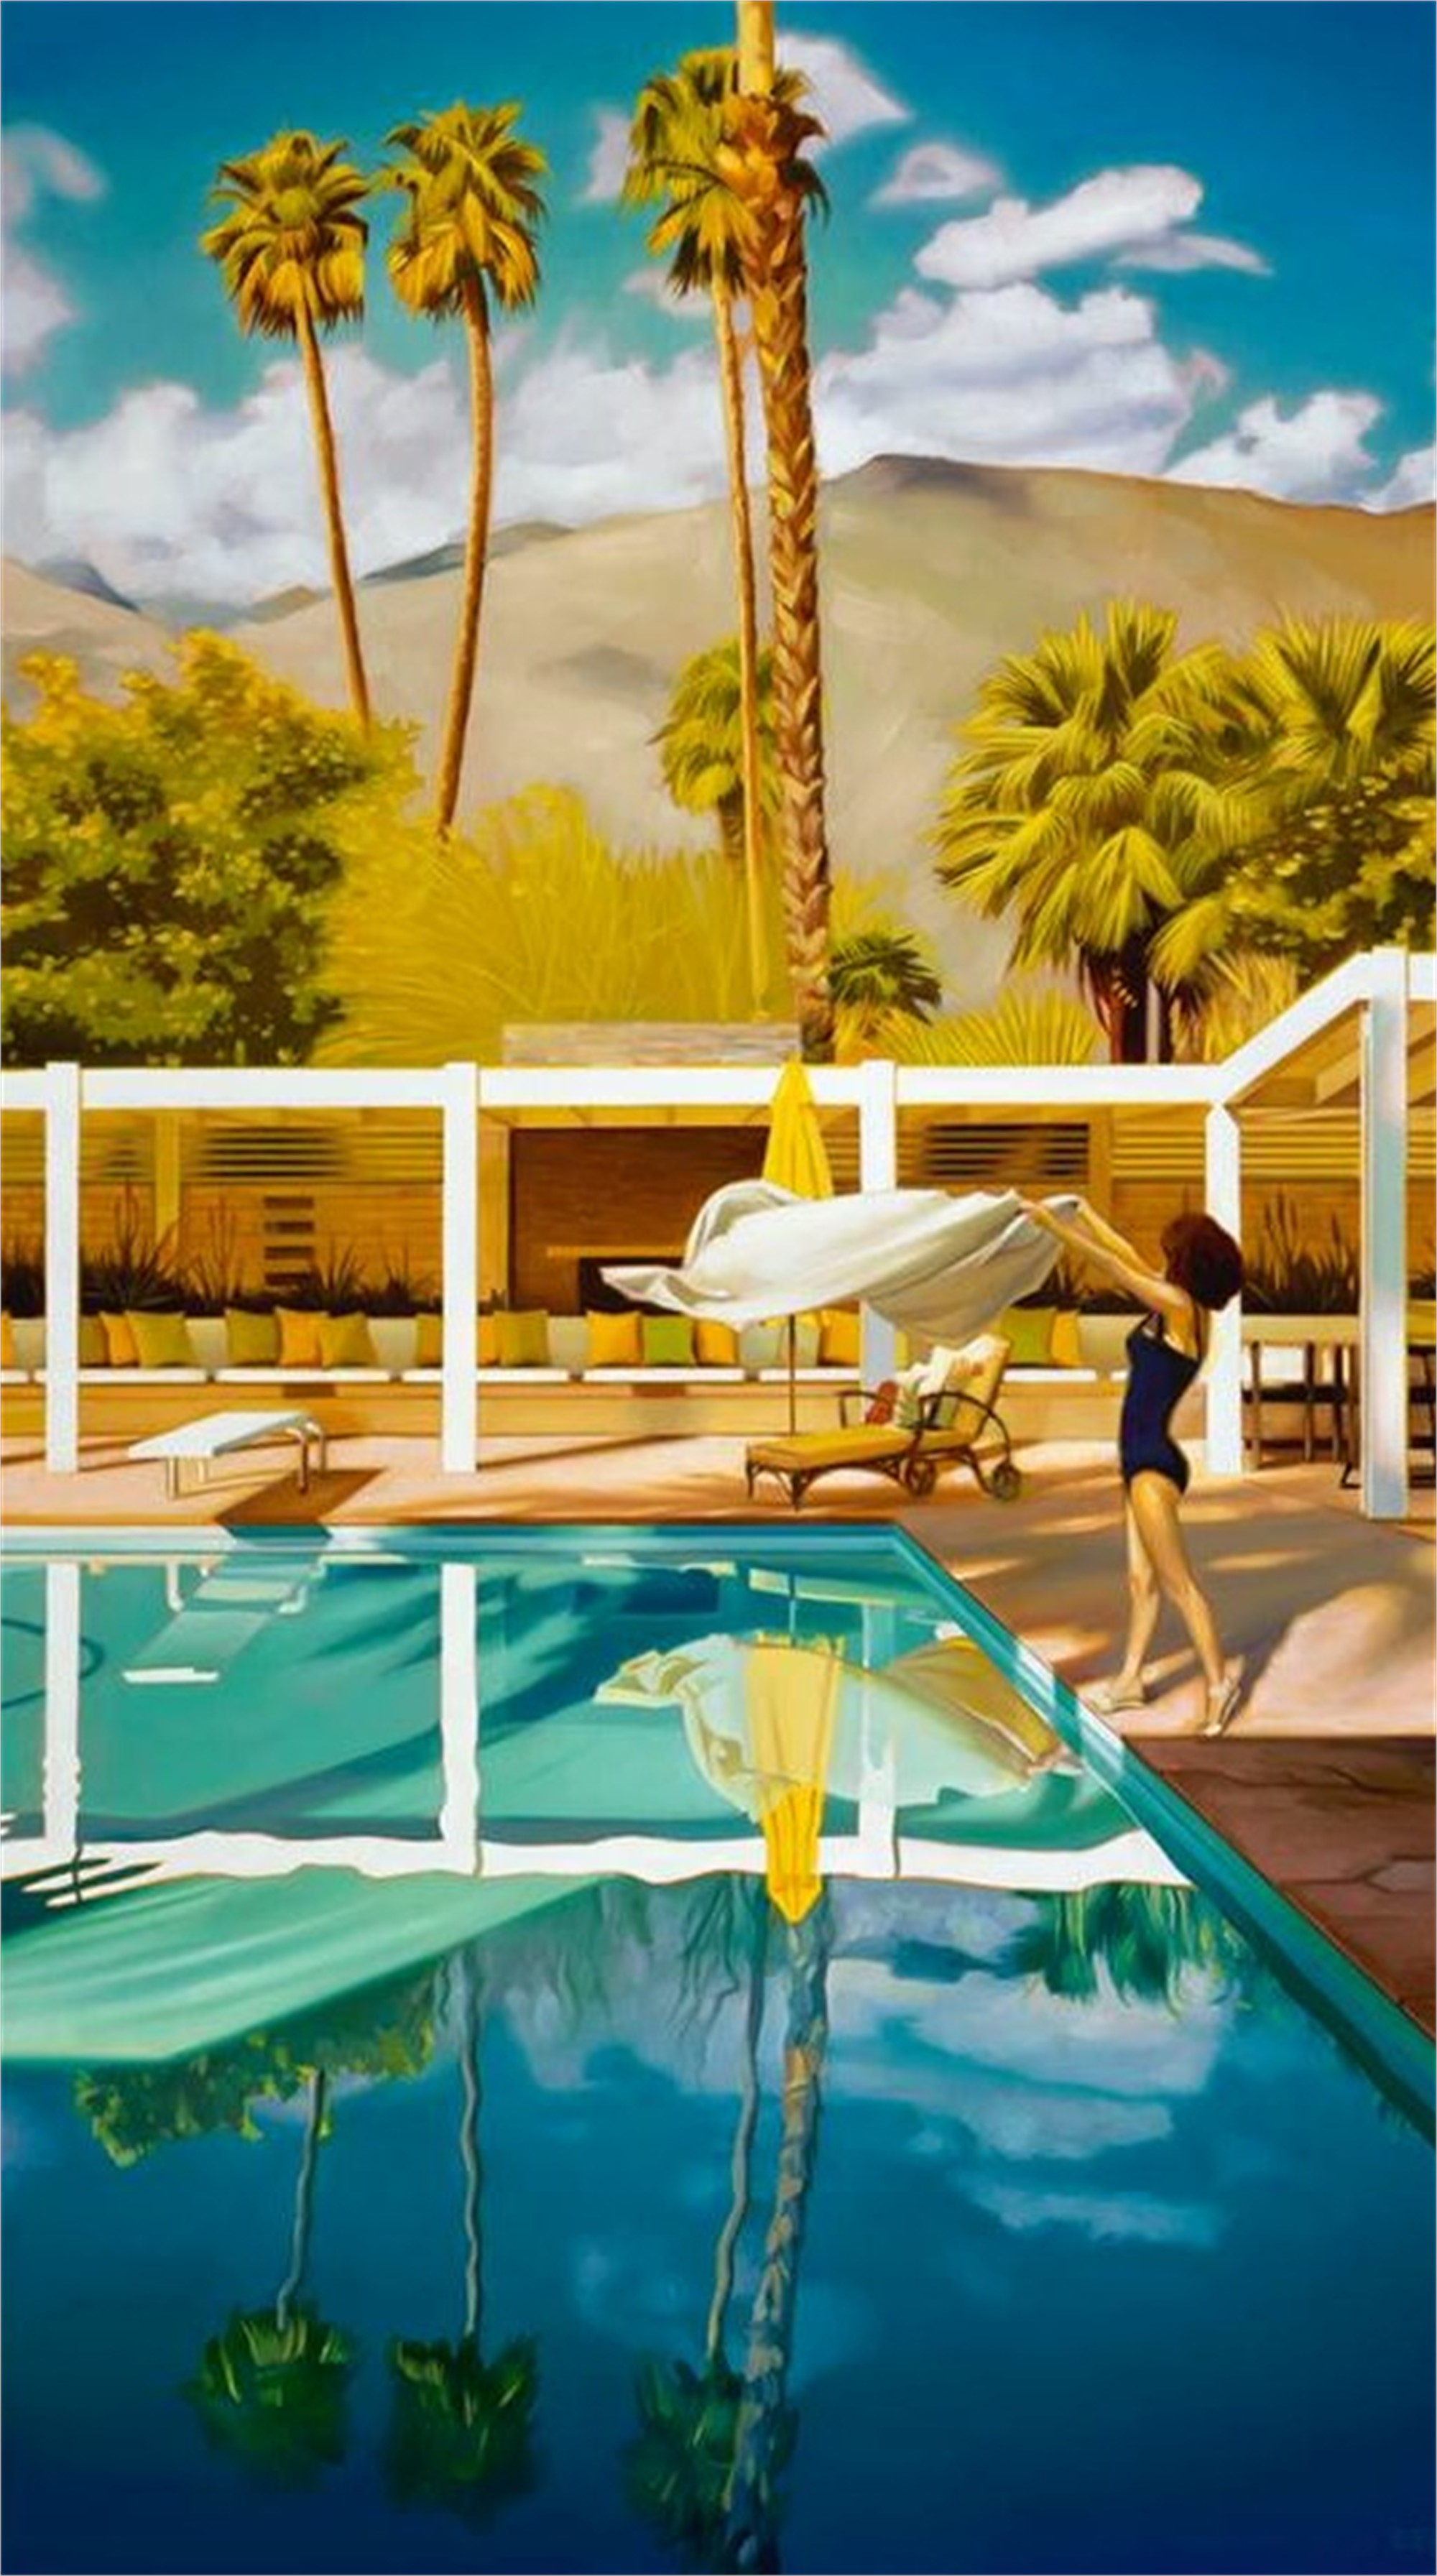 Chillin' In The Palm Shadows (S/N) by Carrie Graber